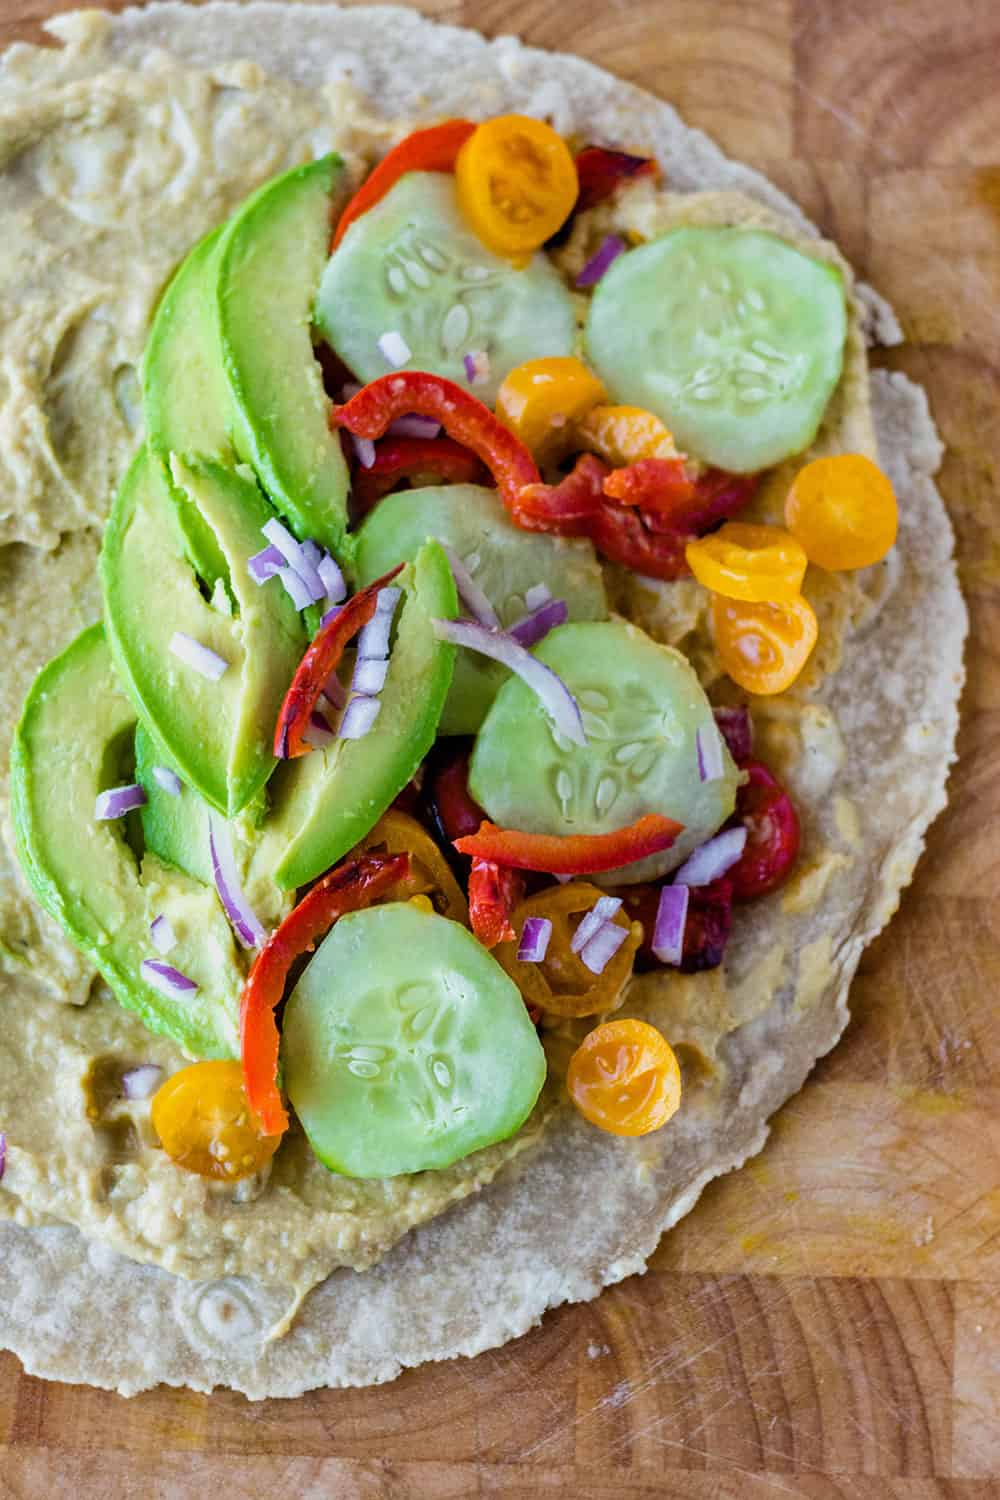 Vegan Quesadilla with Hummus and vegetables